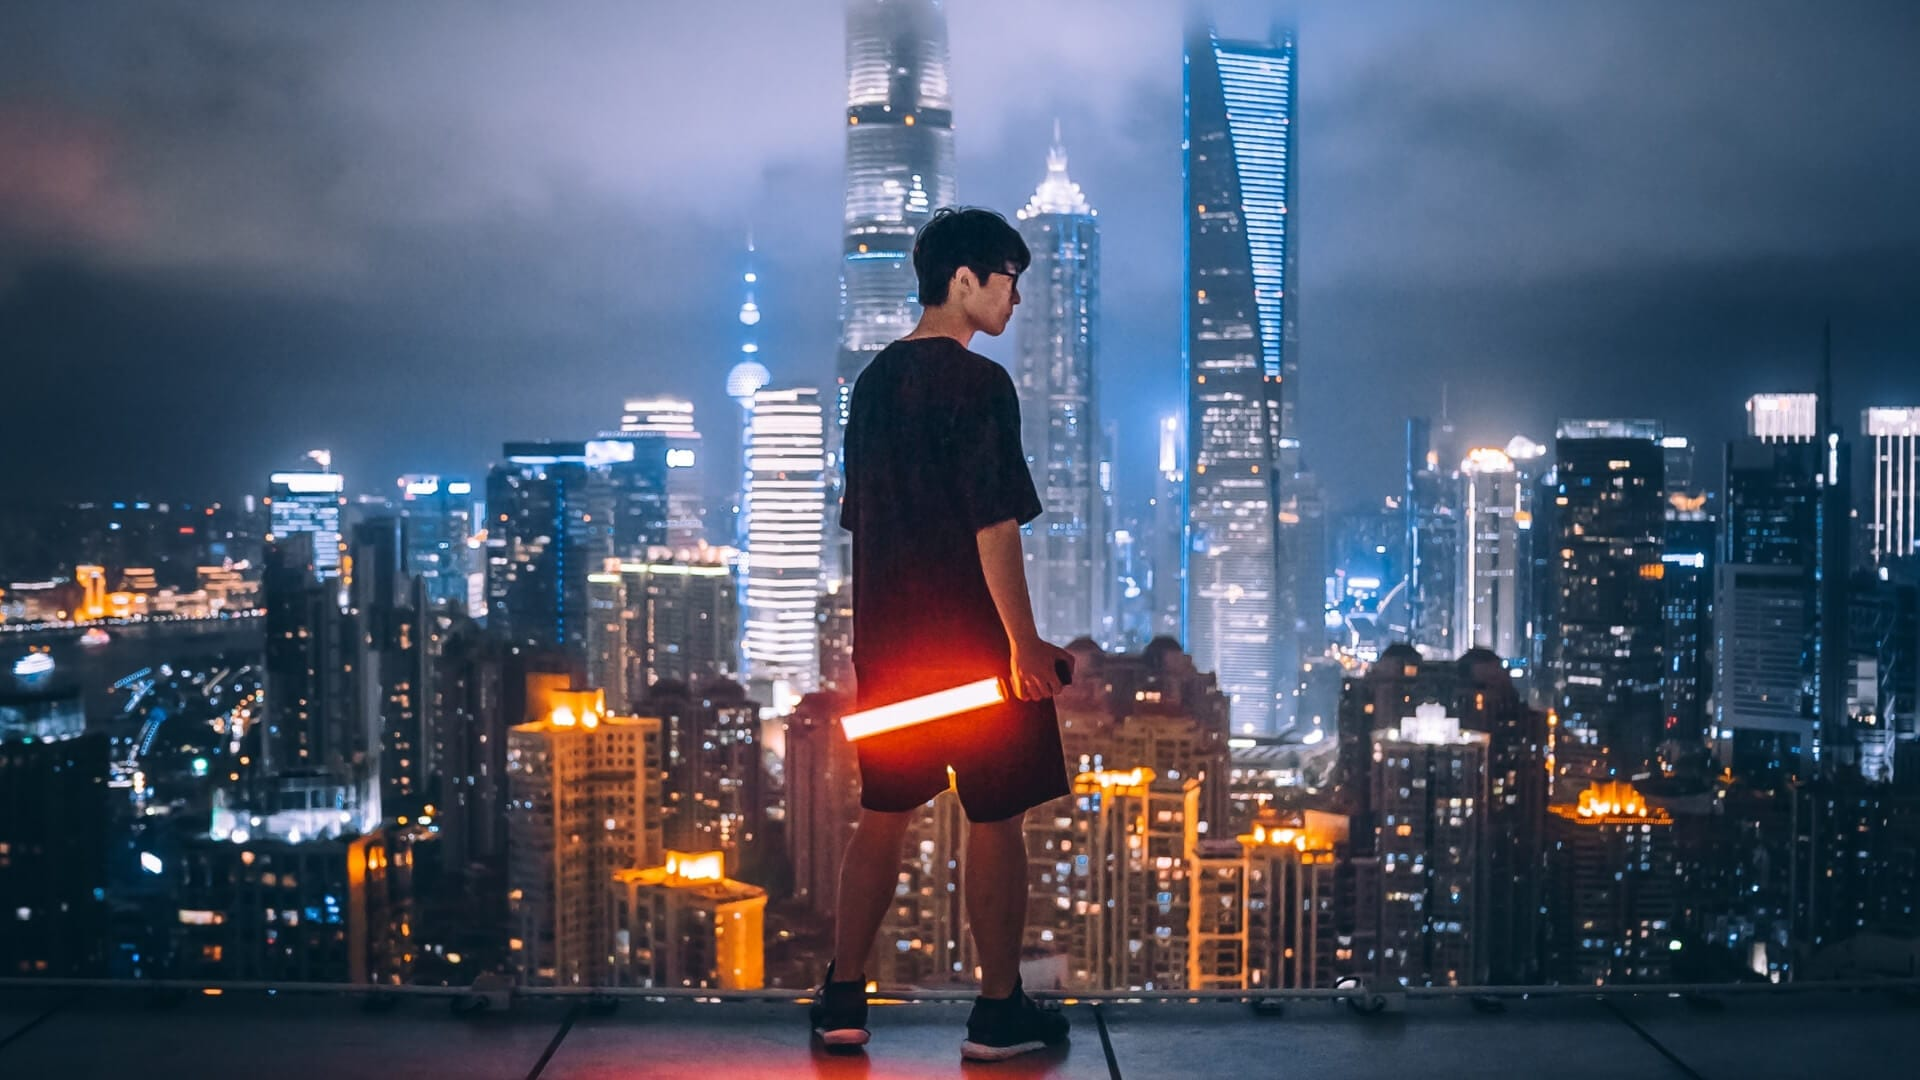 A boy is standing on a high building in Shanghai while he is looking over the city and holding a red stick during a night in Shanghai.